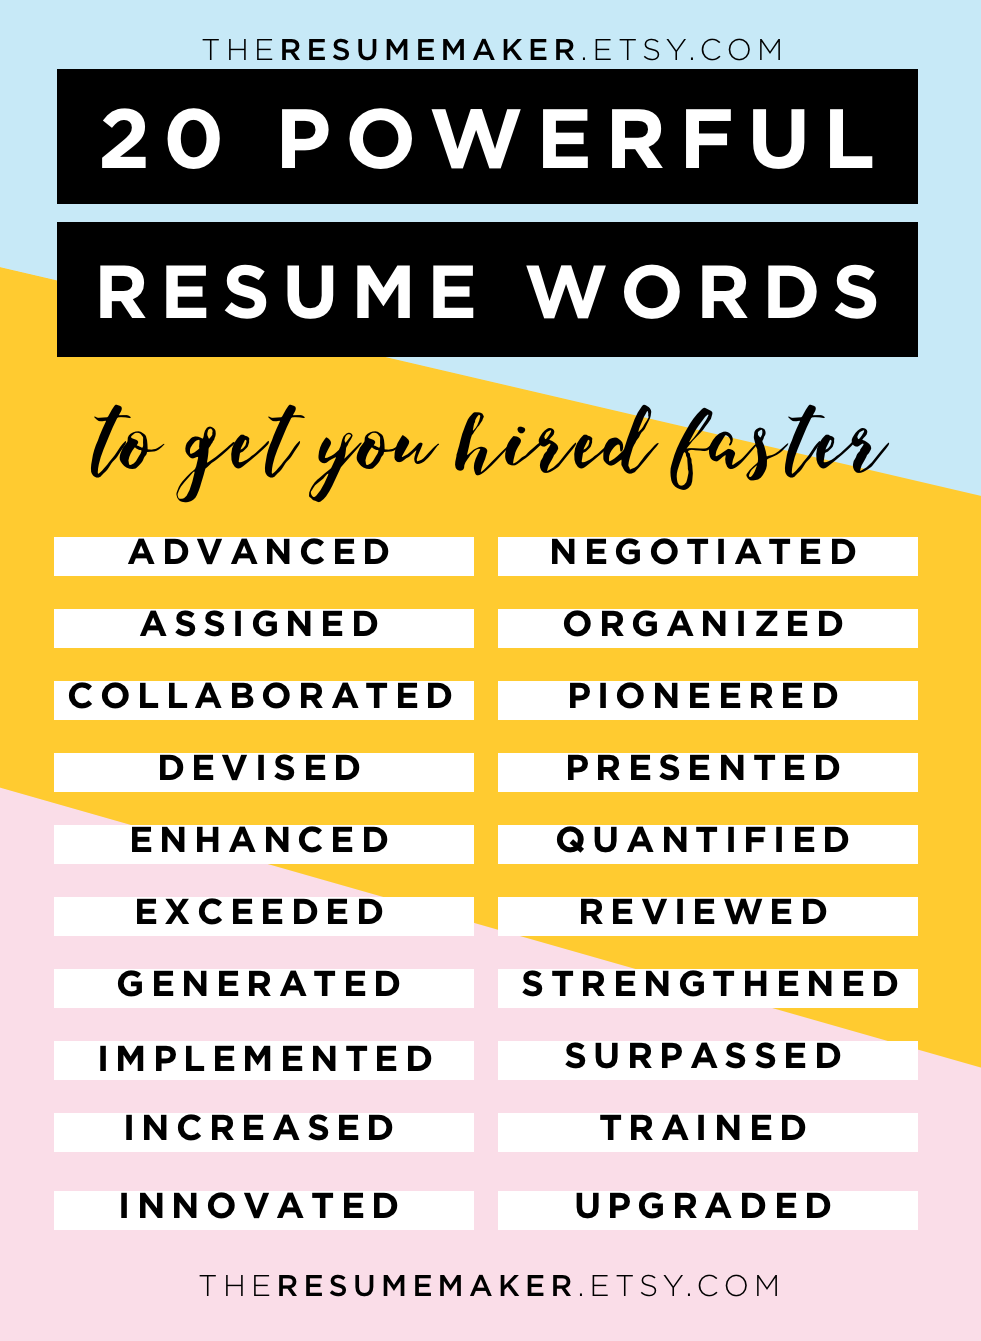 Elegant Resume Power Words, Free Resume Tips, Resume Template, Resume  Words, Action